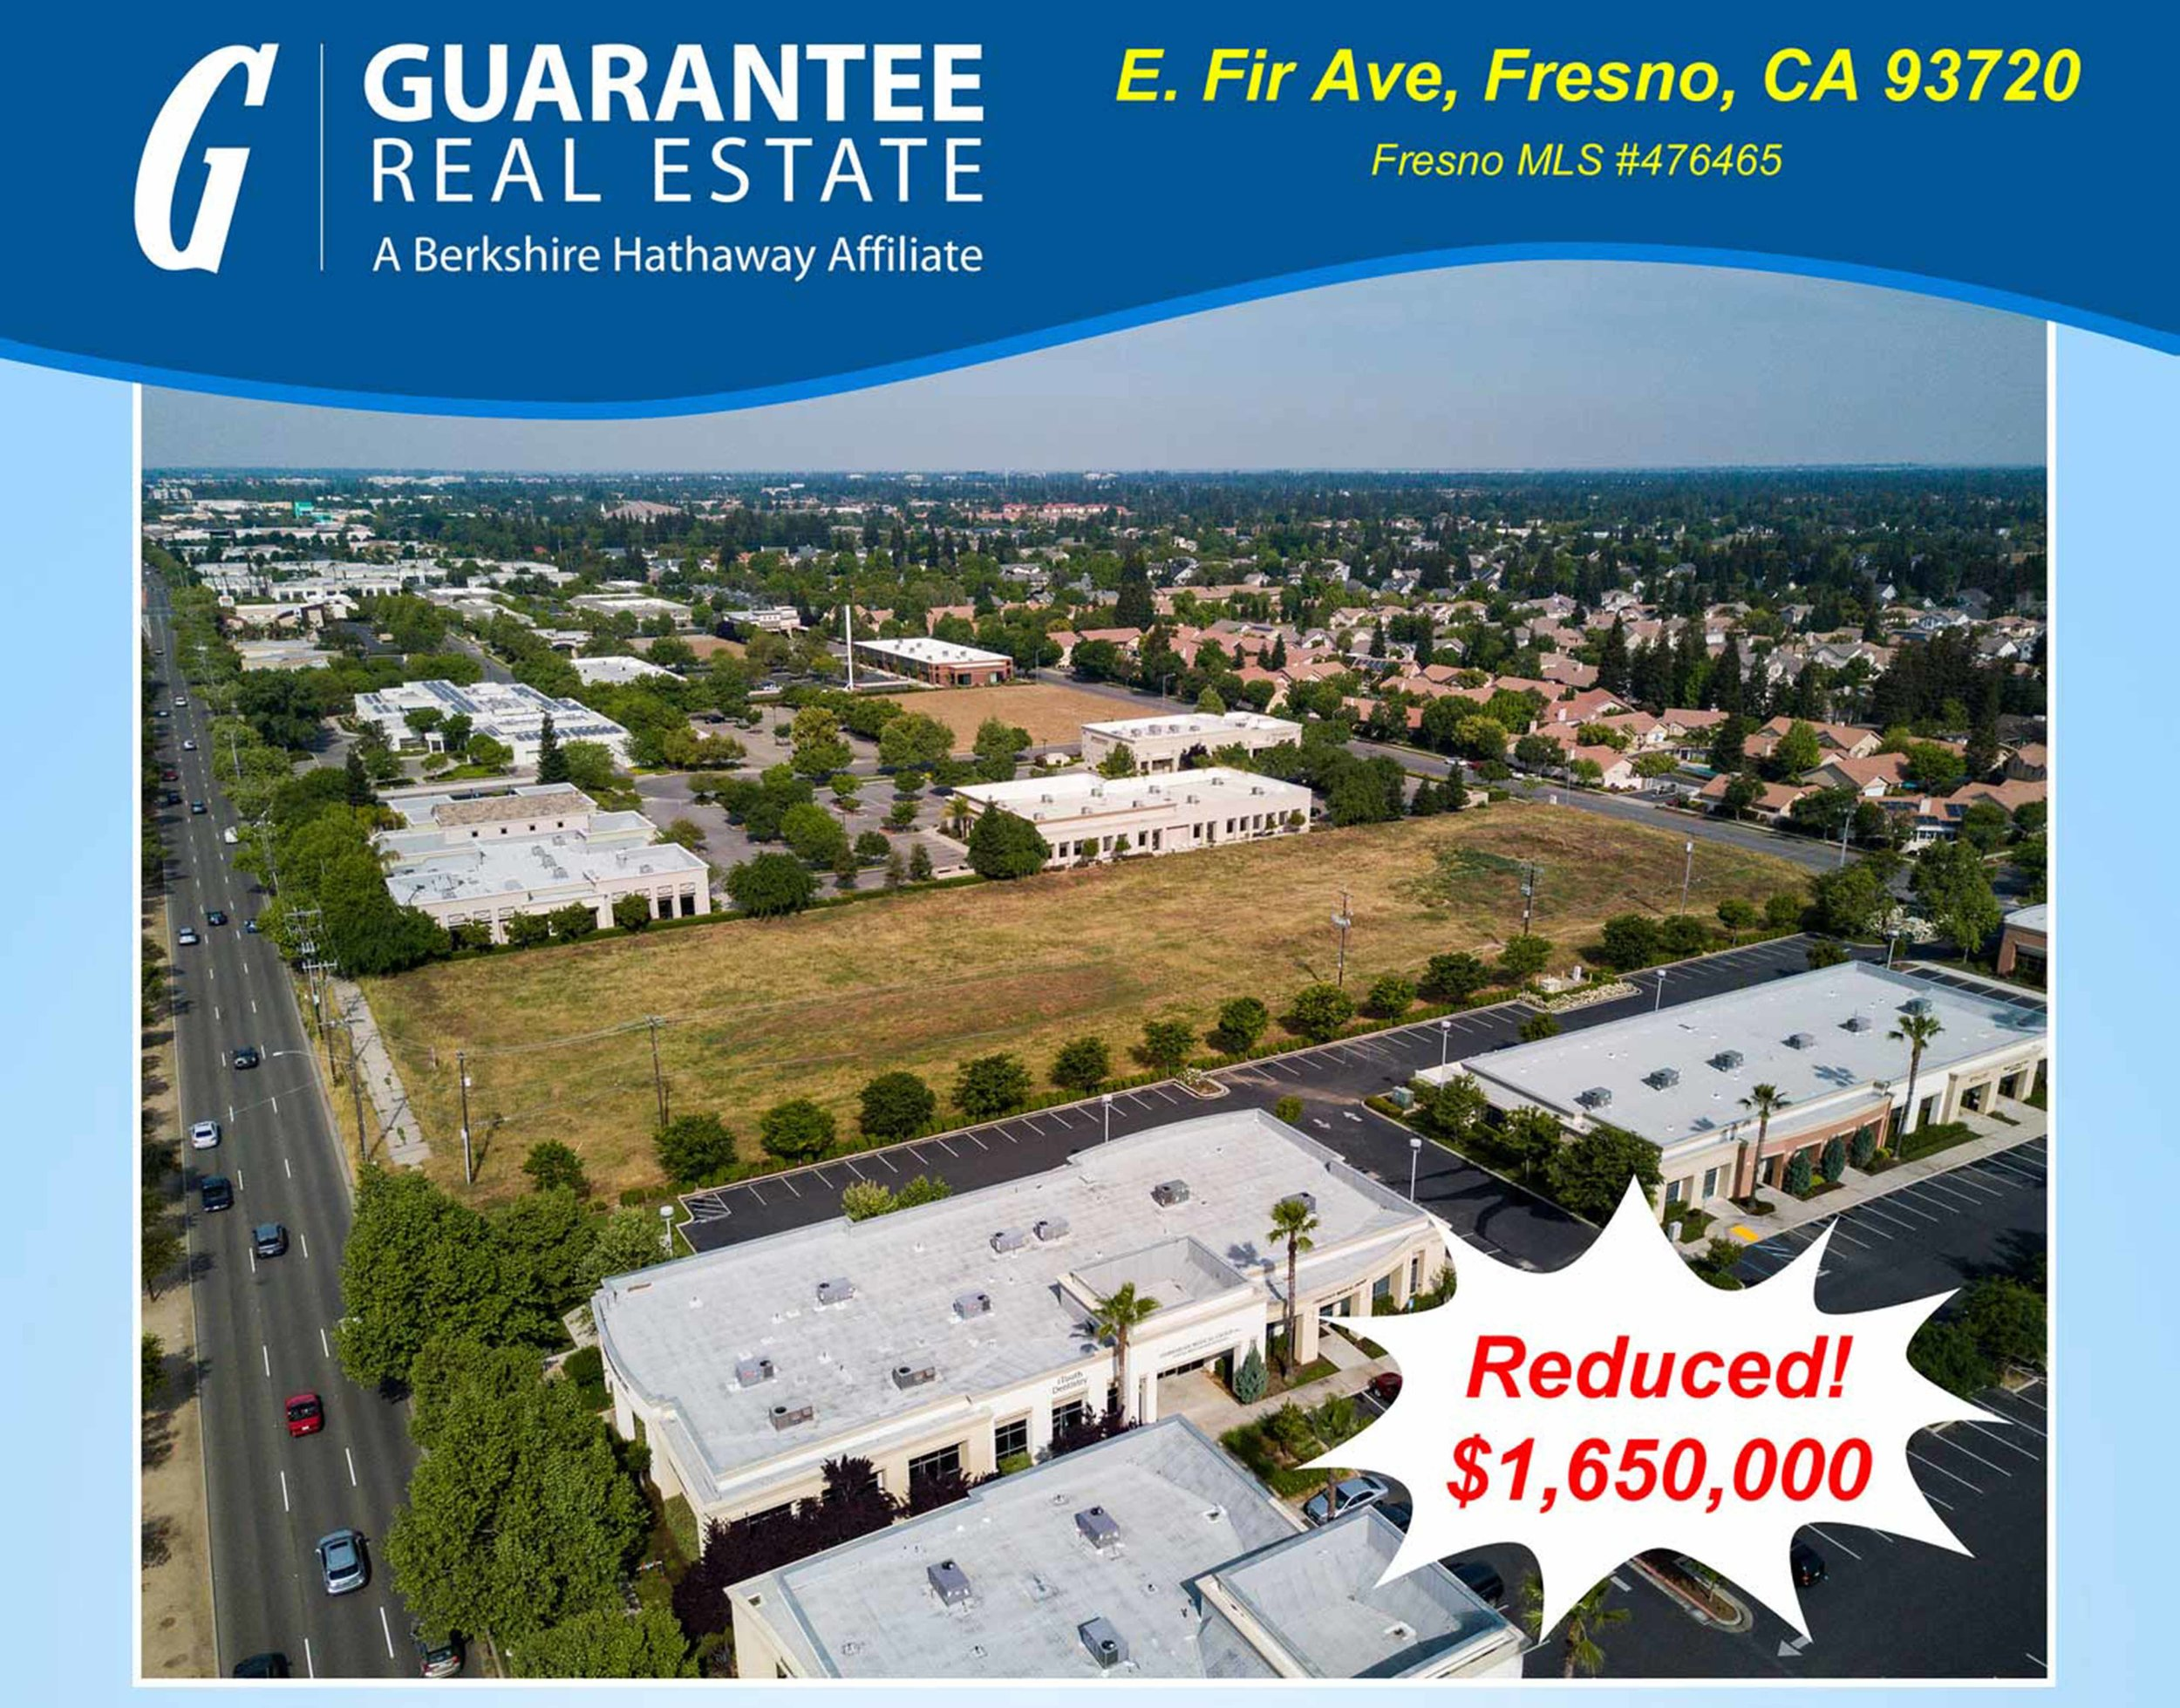 e. fir - Photography and Marketing MaterialSandy Garcia-EkizianGlenn NakamichiGuarantee Real Estate